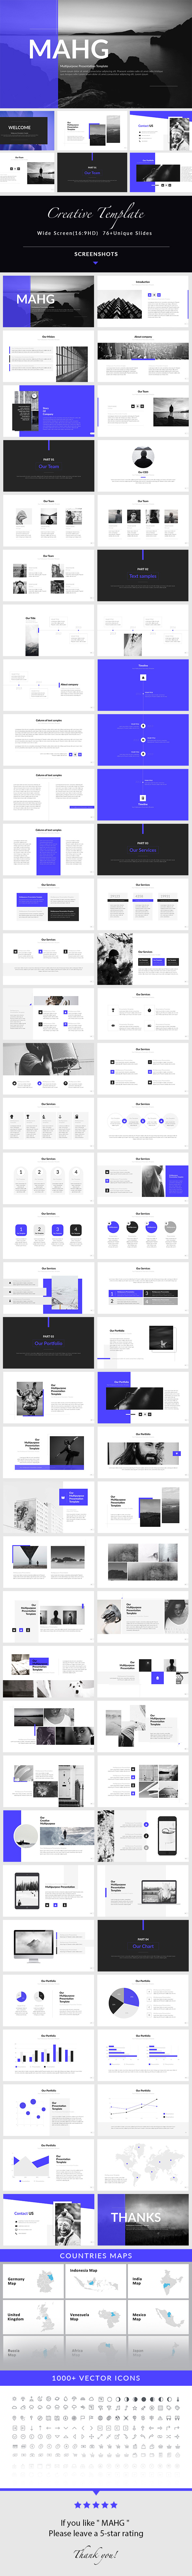 GraphicRiver MAHG Keynote Presentation Template 21043304